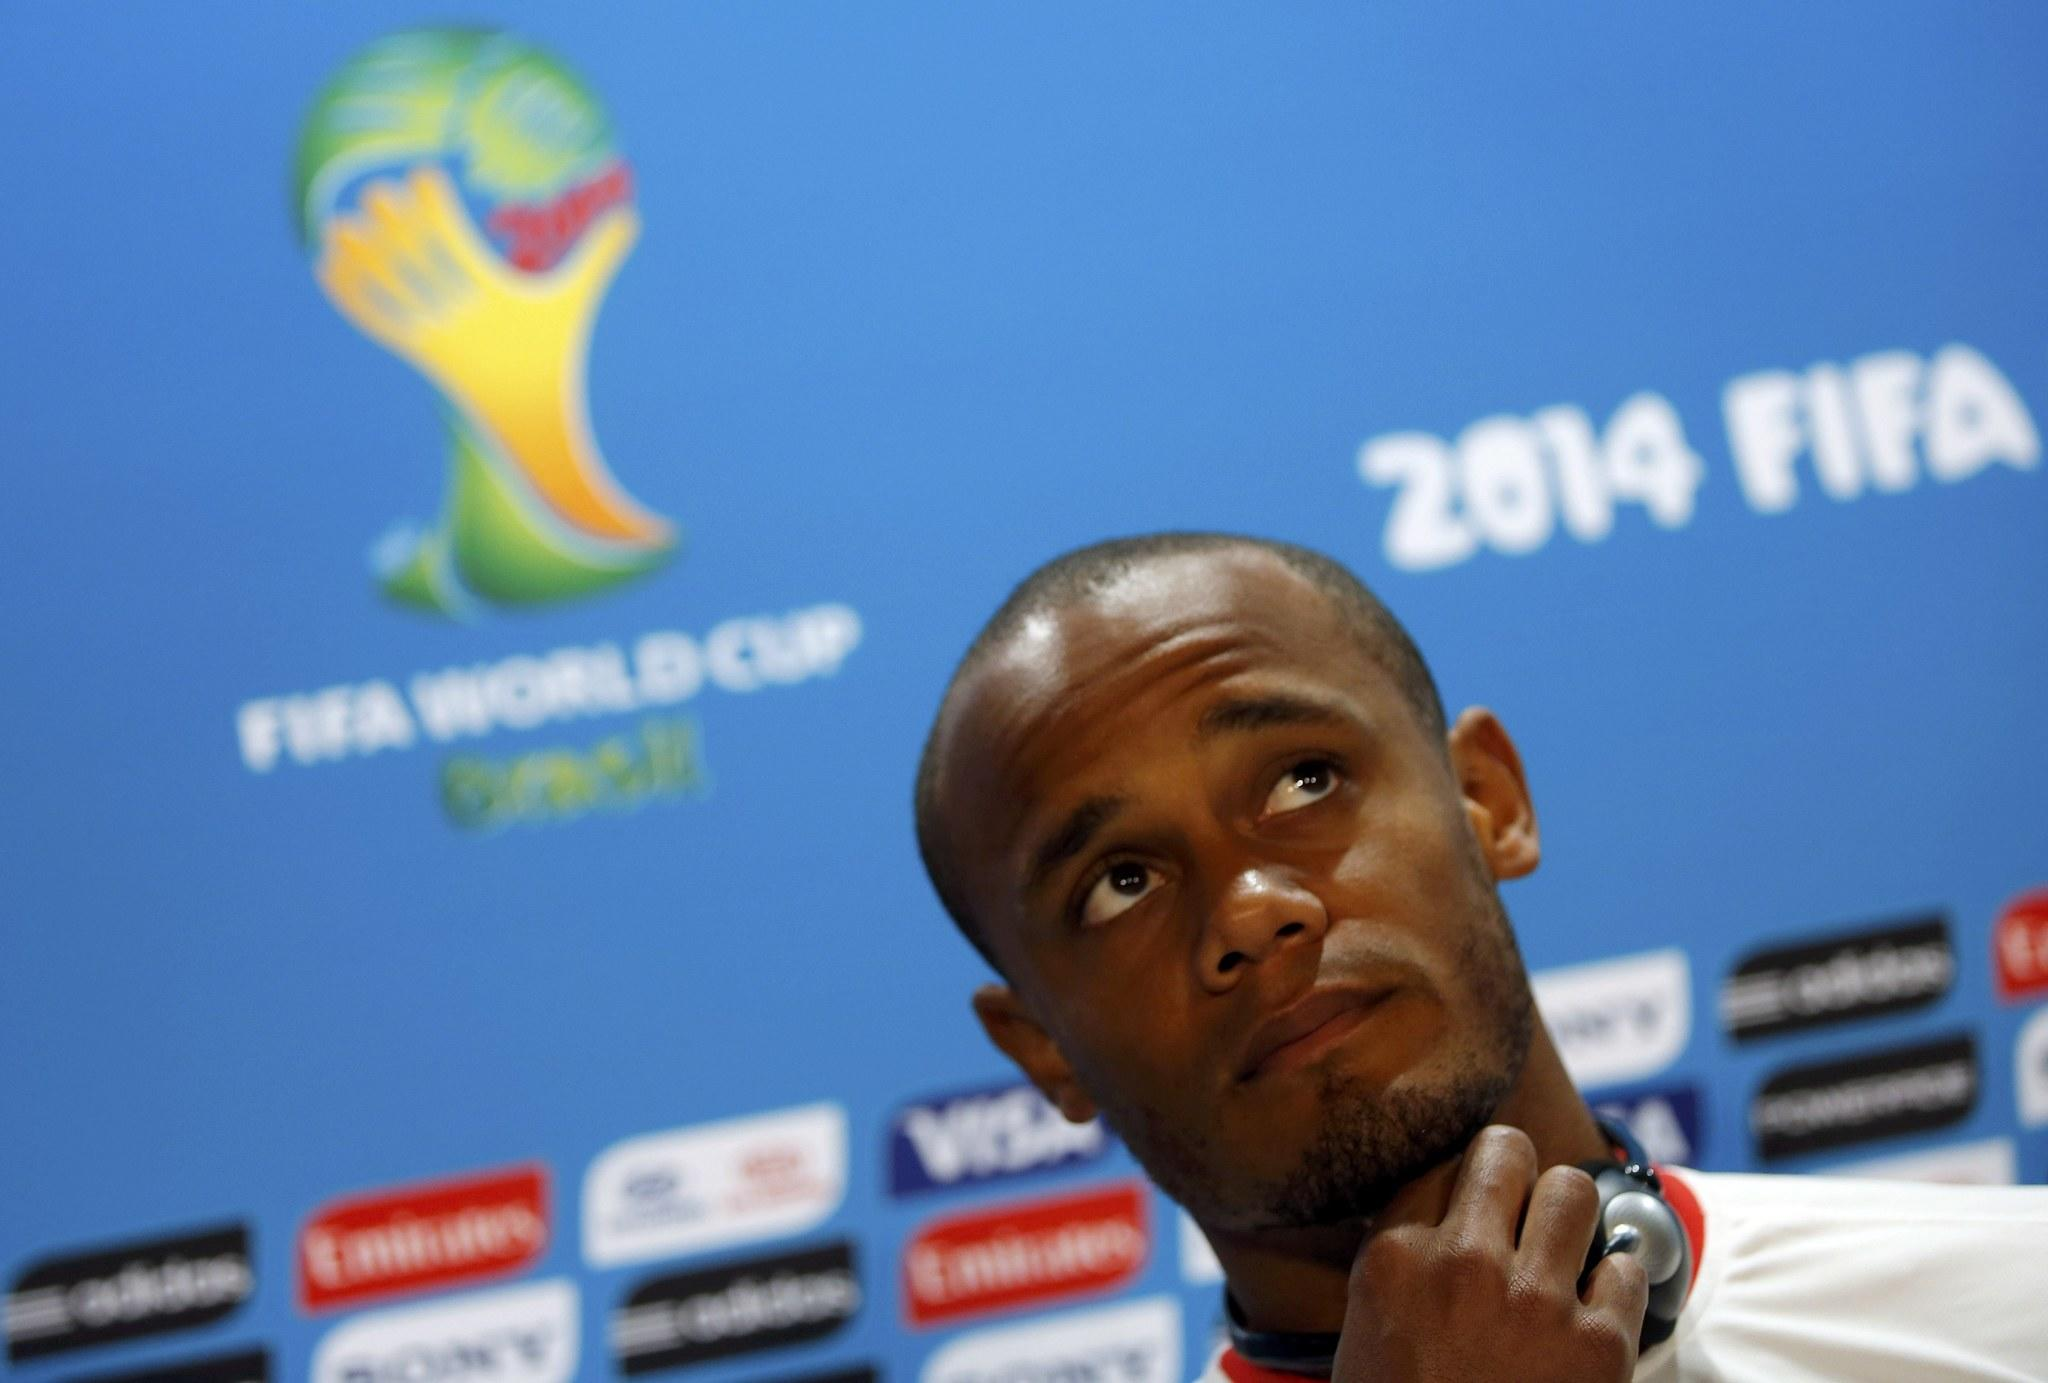 Belgium's national soccer player Vincent Kompany attends a news conference before a training session at Mineirao stadium in Belo Horizonte on Monday. Belgium will face Algeria in their first 2014 World Cup Group H soccer match on Tuesday.